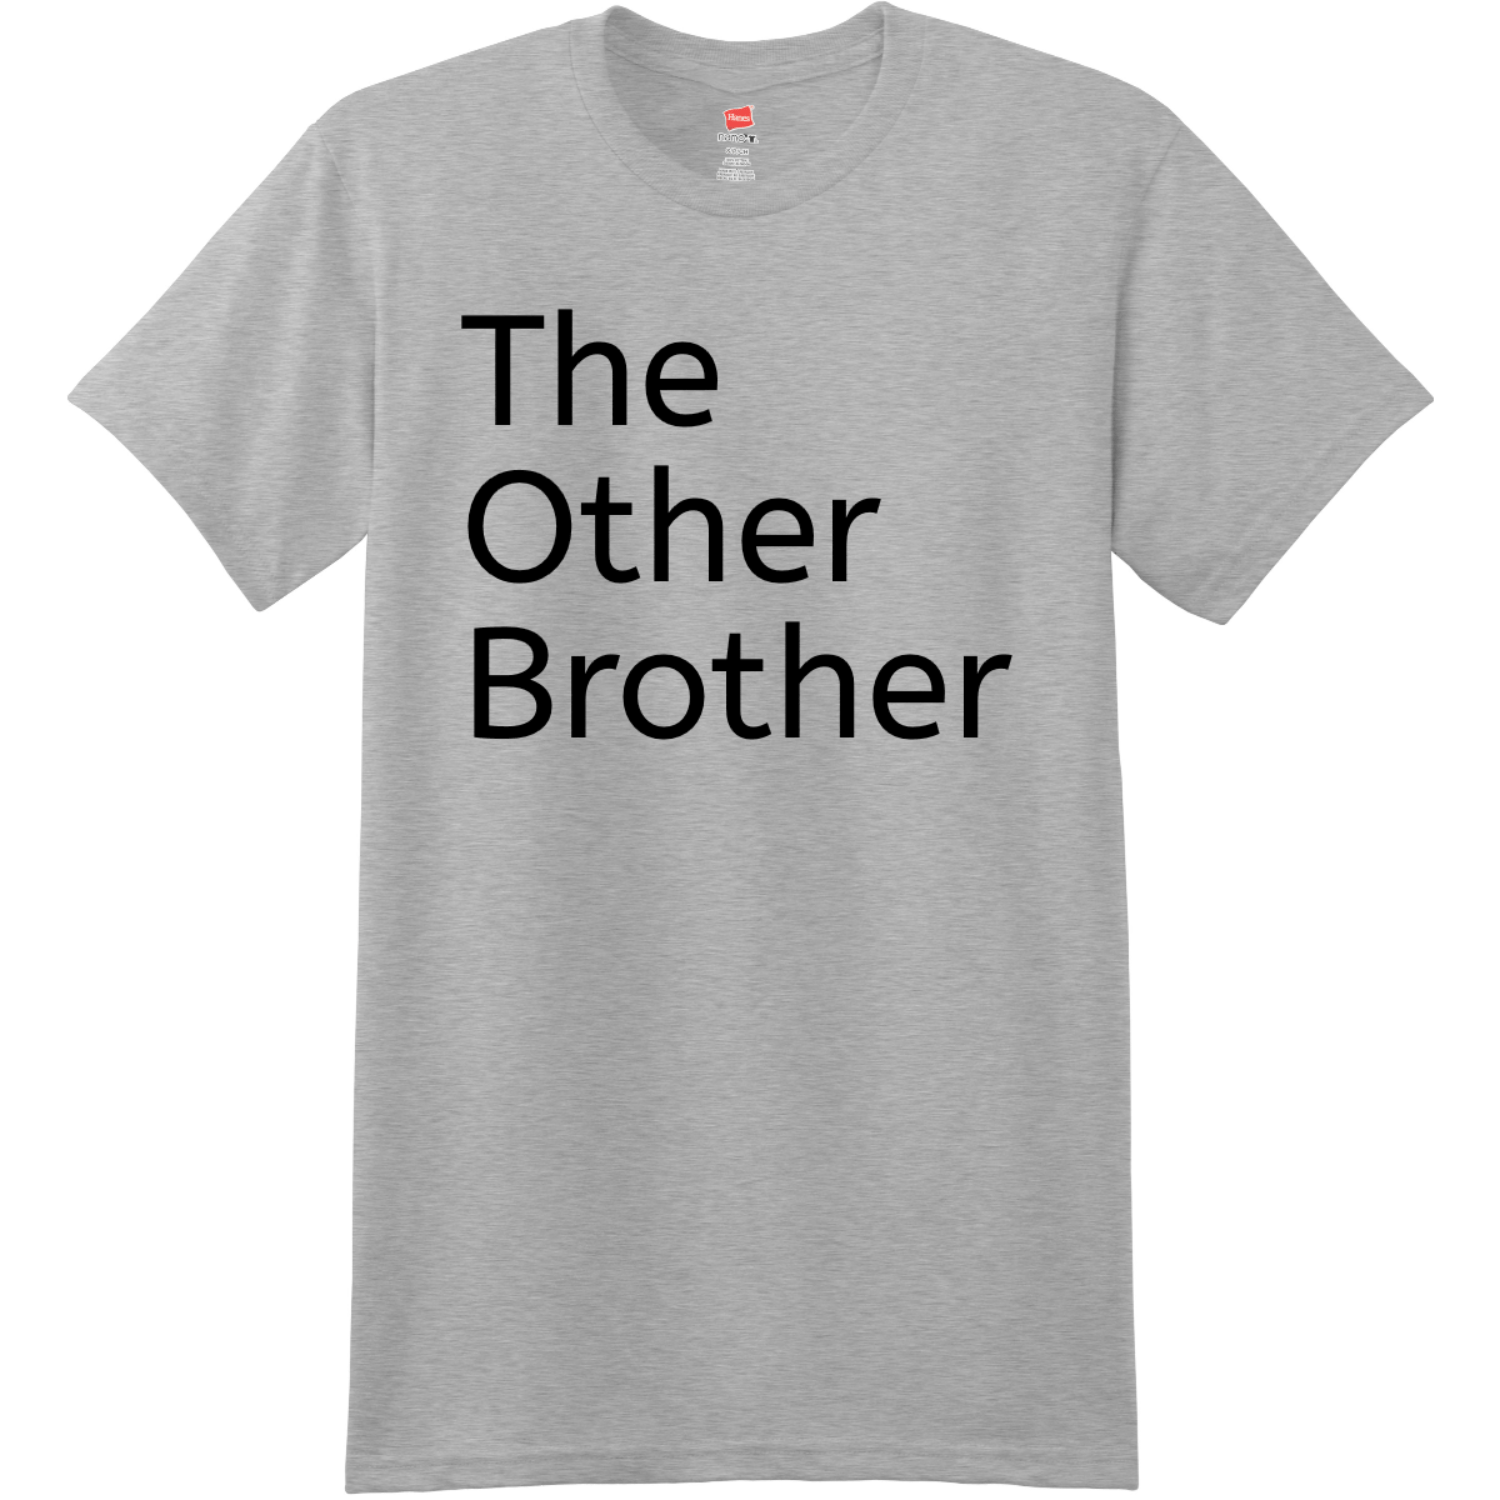 The Other Brother T Shirt Light Steel Hanes Nano 4980 Ringspun Cotton T Shirt